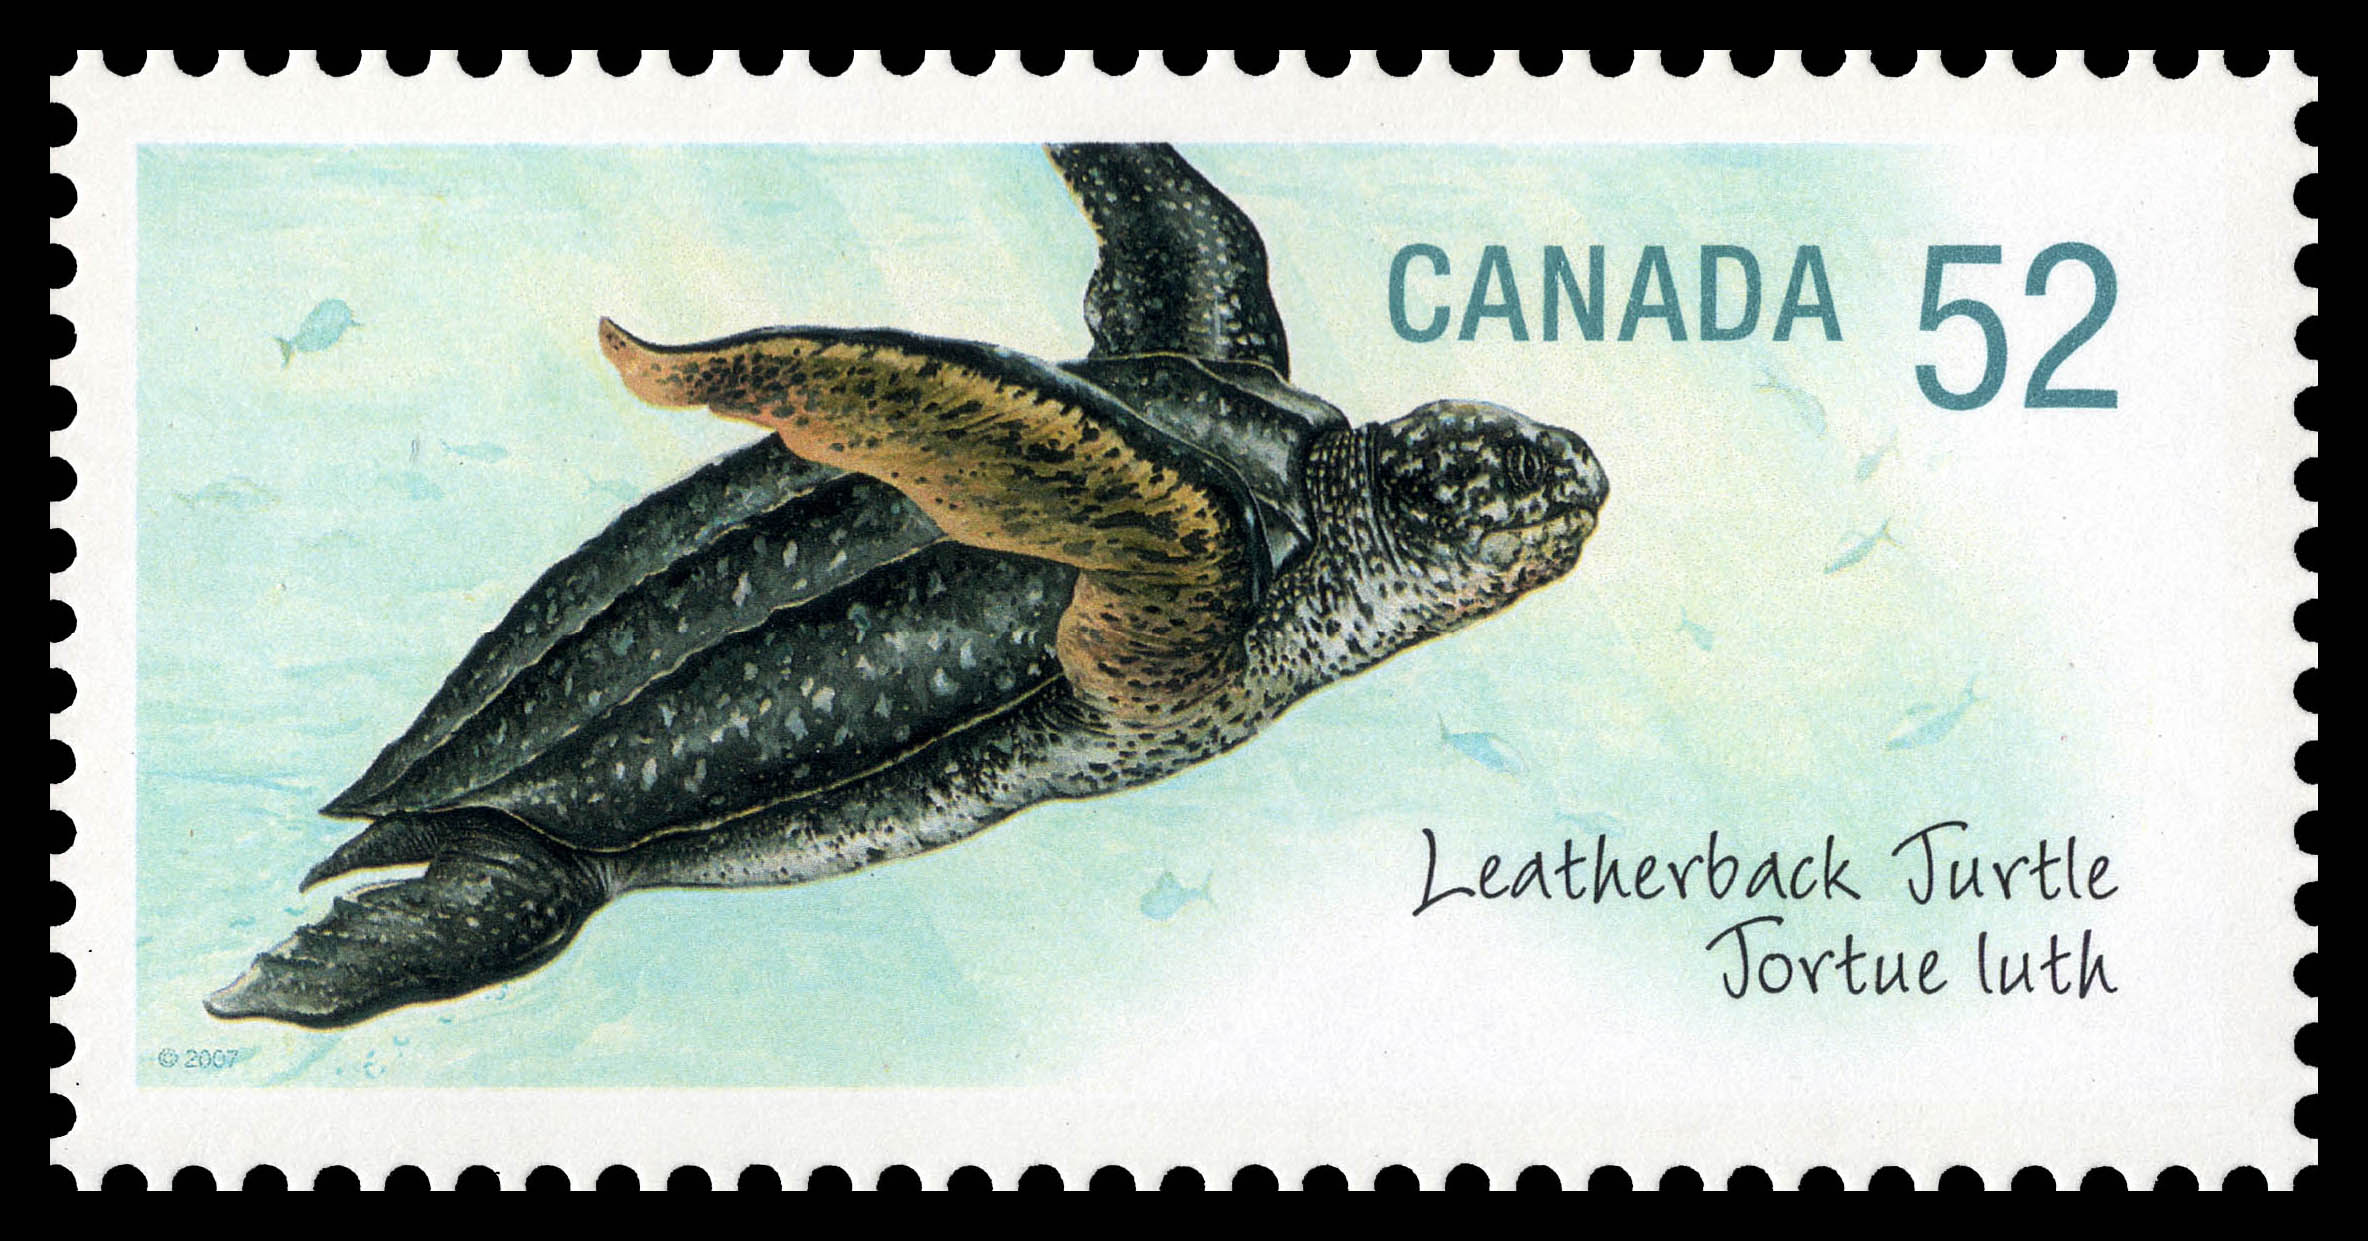 Leatherneck Turtle Canada Postage Stamp